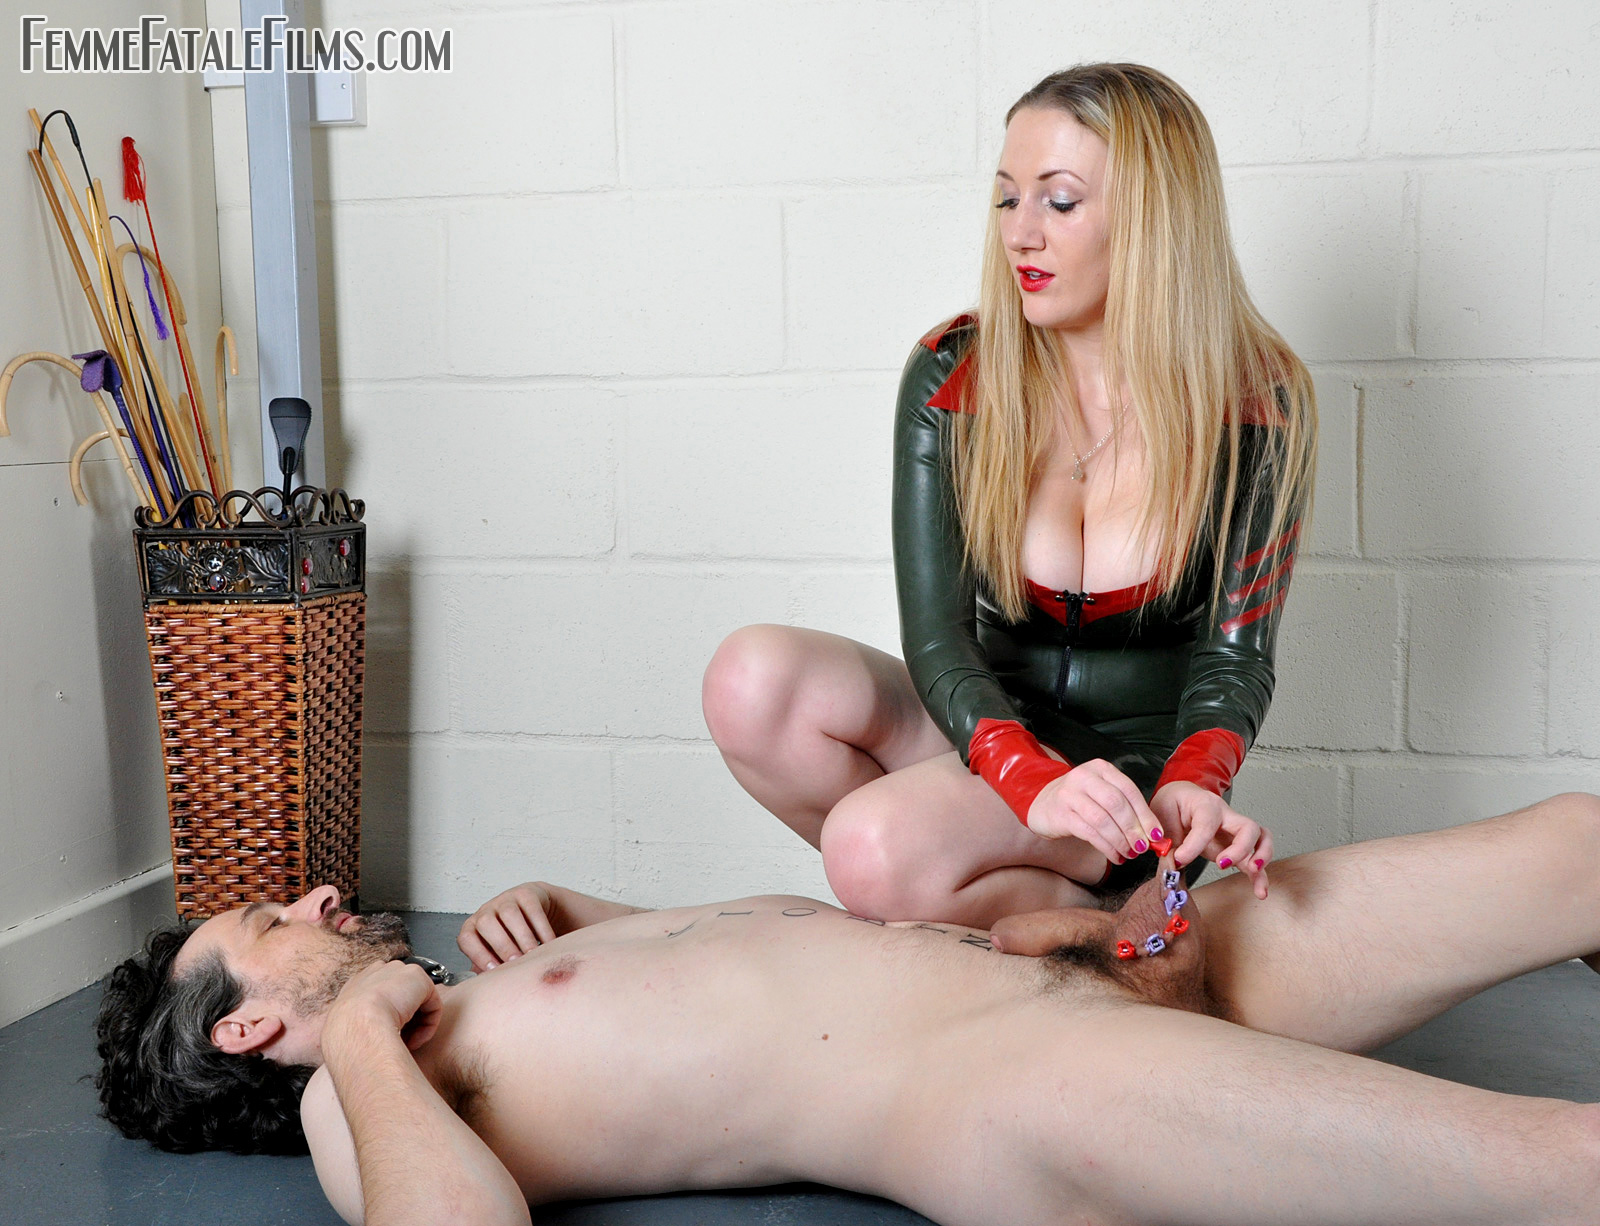 Cum on her face free video clips